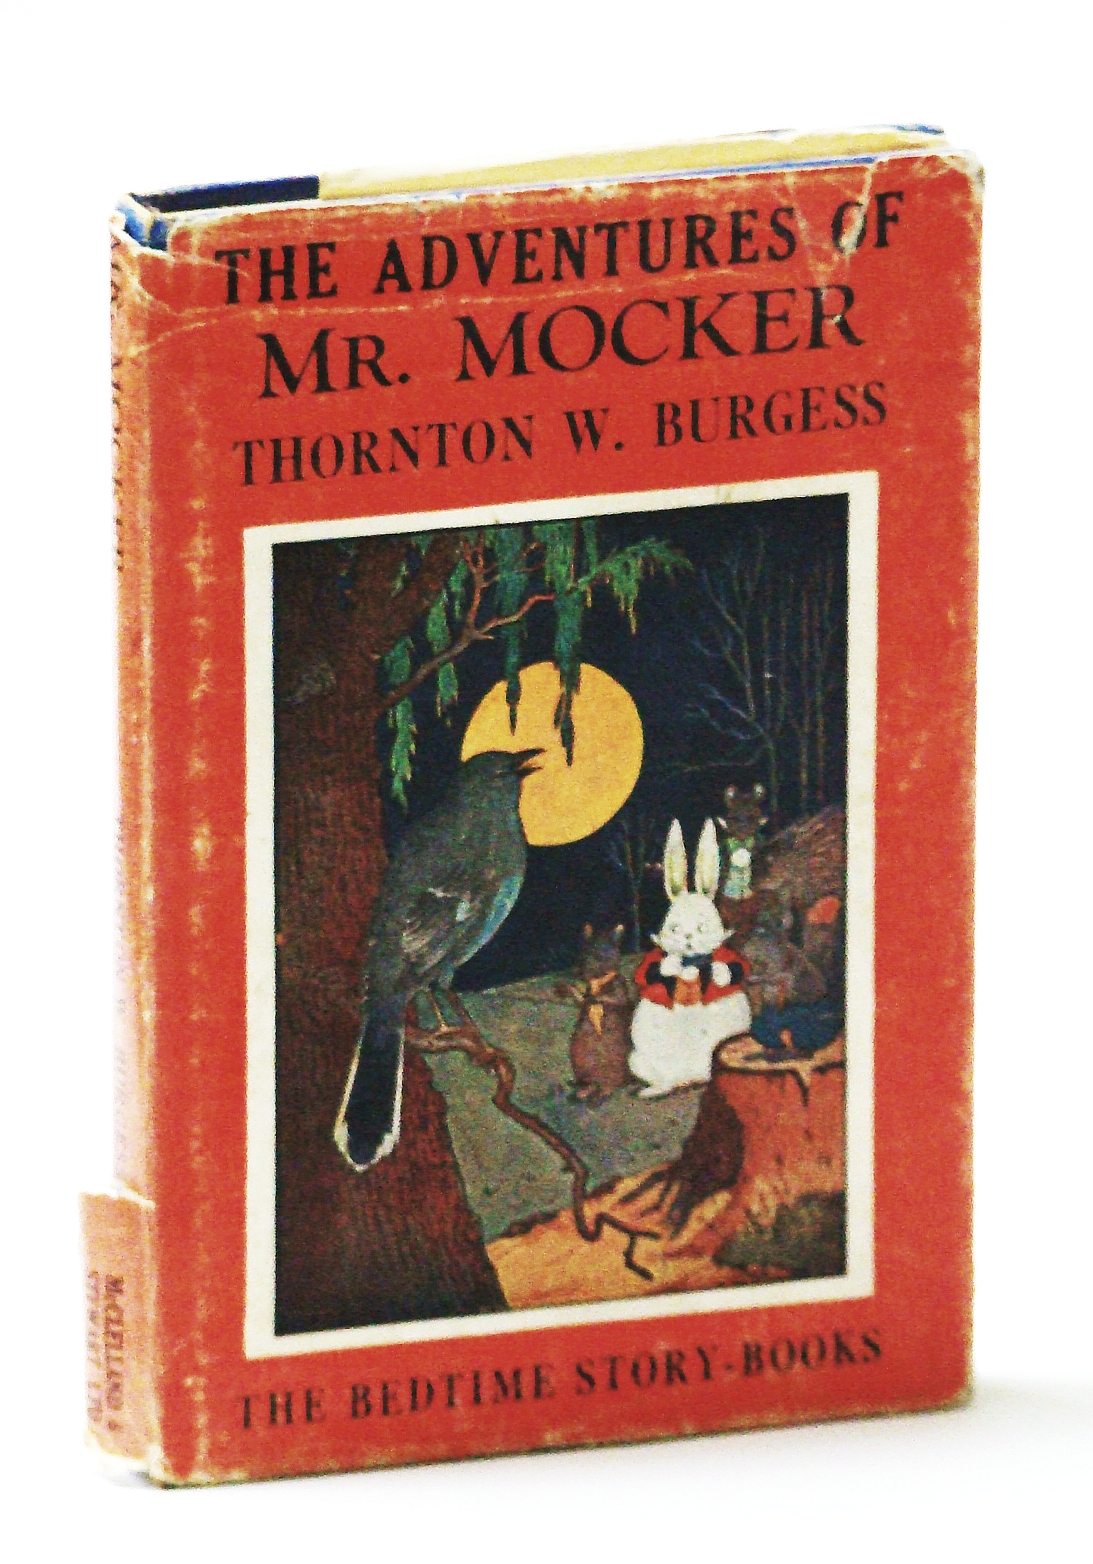 Image for The Adventures of Mr. Mocker - The Bedtime Story-Books